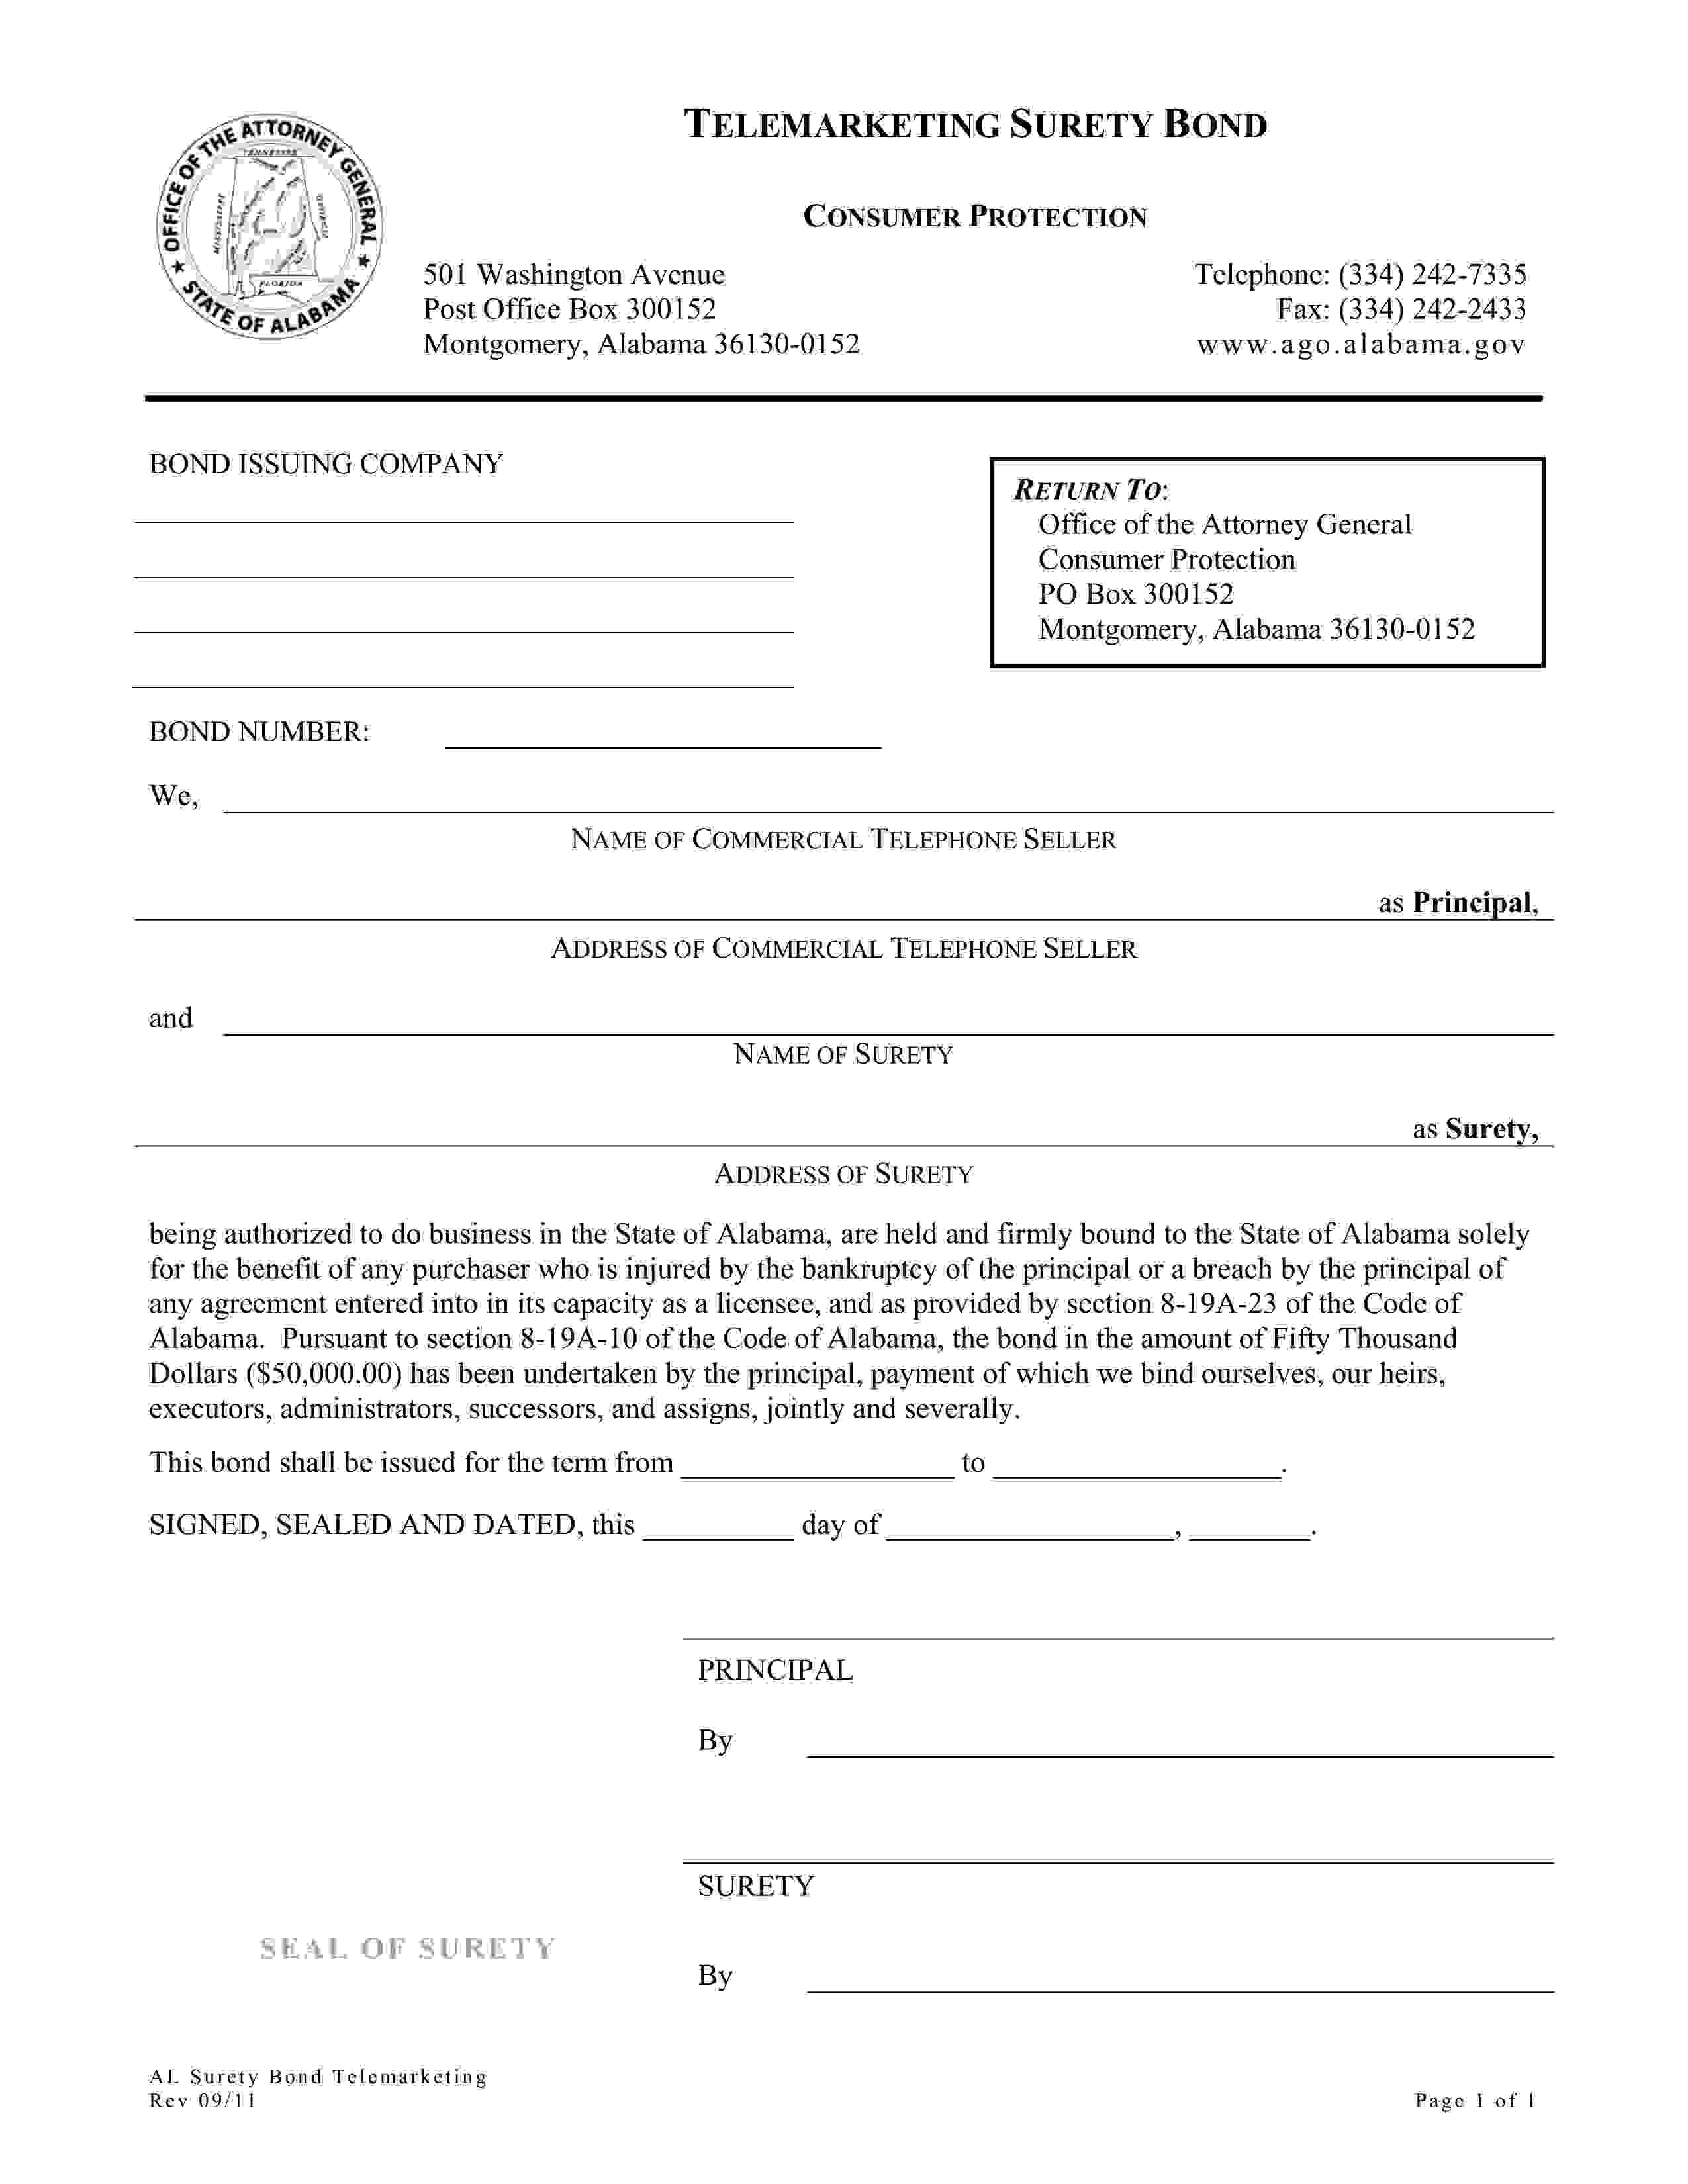 Alabama Office of the Attorney General Consumer Protection Telemarketing Bond sample image